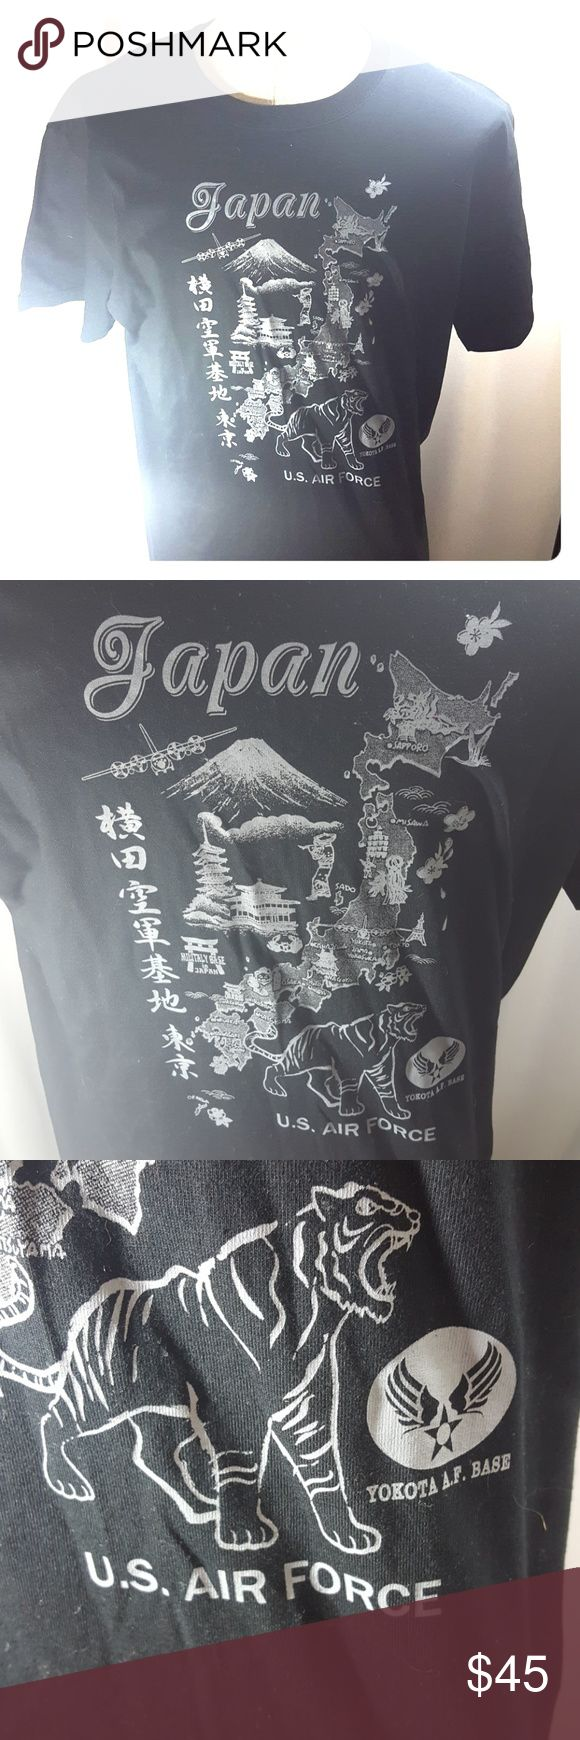 Japan Yokota War Tigers U.S Air force Base Tee Approx. Measurements   Pit to pit 22 Top collar to hem 29  Fits like a large  Machine washable  100% cotton  Black & White   Johnny Cash  Normal wear Gently used  Size may vary   Very good condition   Great piece for any collector or fan   Shipped with care Buy with confidence  Reasonable offers  Fast shipping  Please review all pictures and descriptions to verify what you are buying   Thank you for checking out my listings today & don't forget…